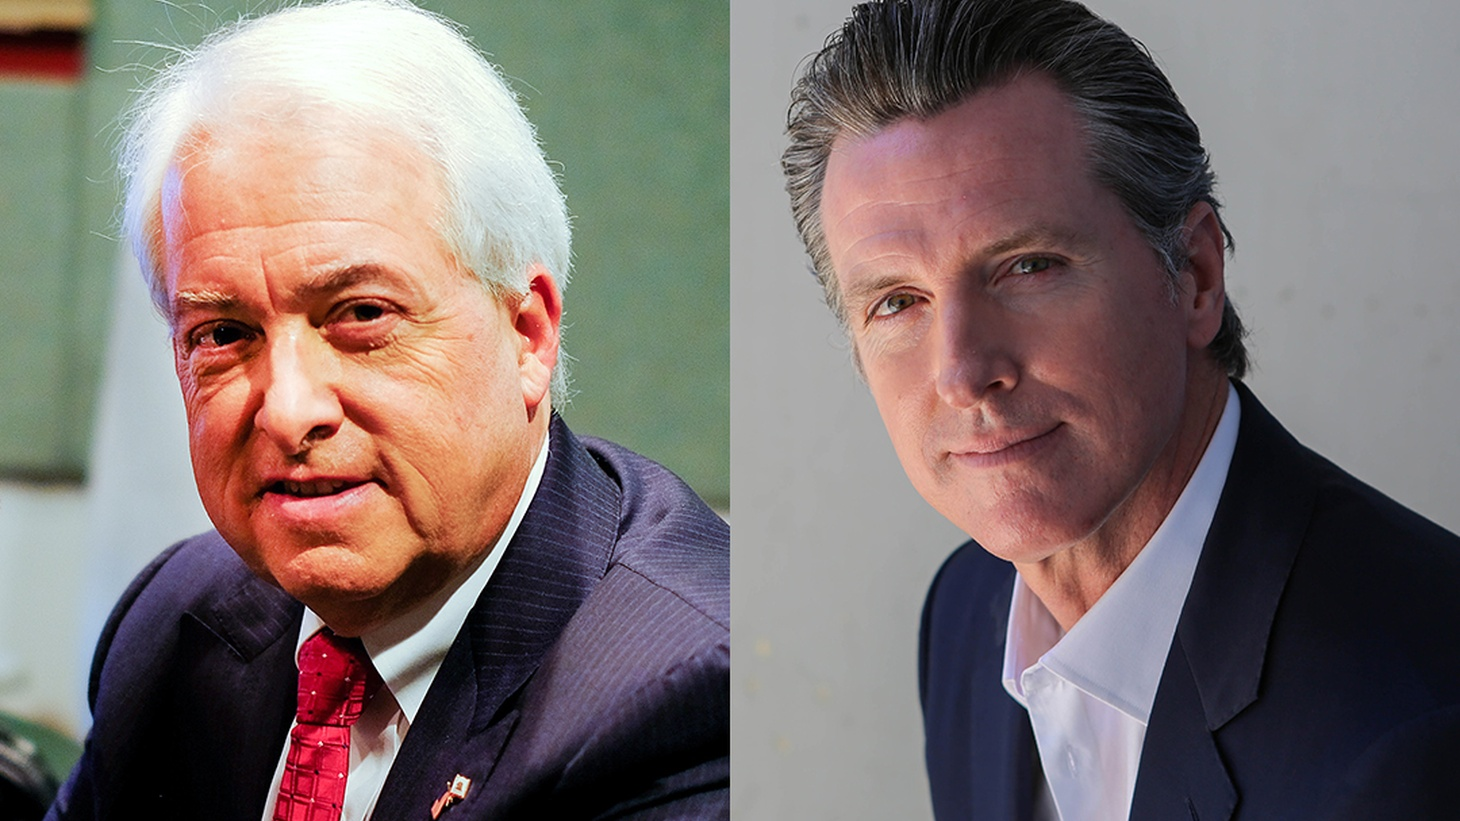 Democrat Gavin Newsom and Republican John Cox met today in what's likely to be their only debate before the November election. The latest polls show Newsom with a comfortable 11-point lead over Cox, but that's narrower than it was before.